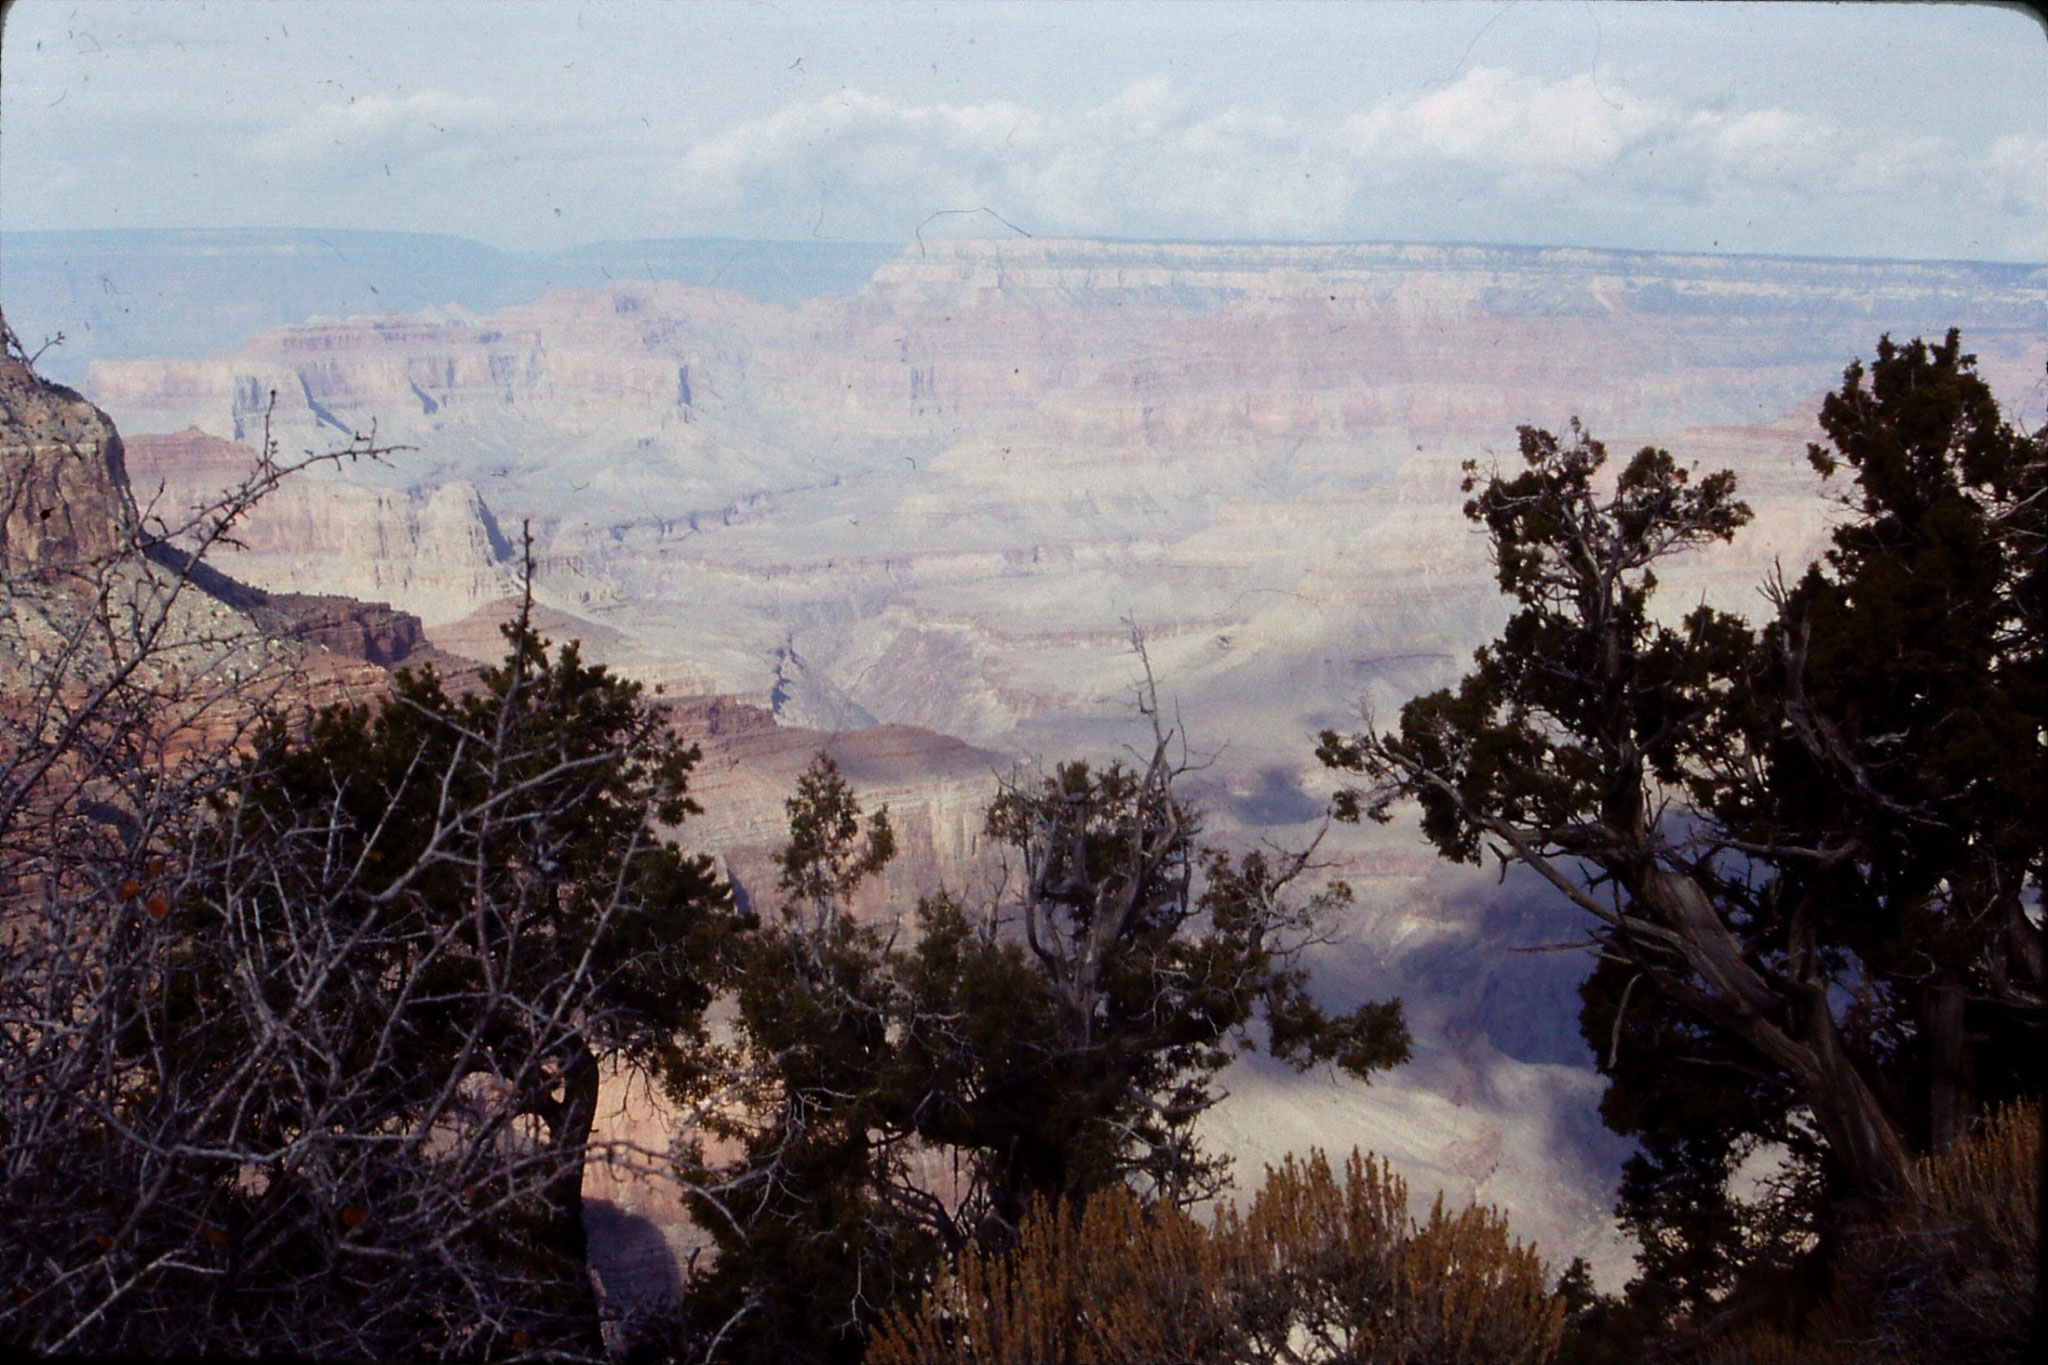 17/12/1990: 3: Grand Canyon from Hermit's Rest